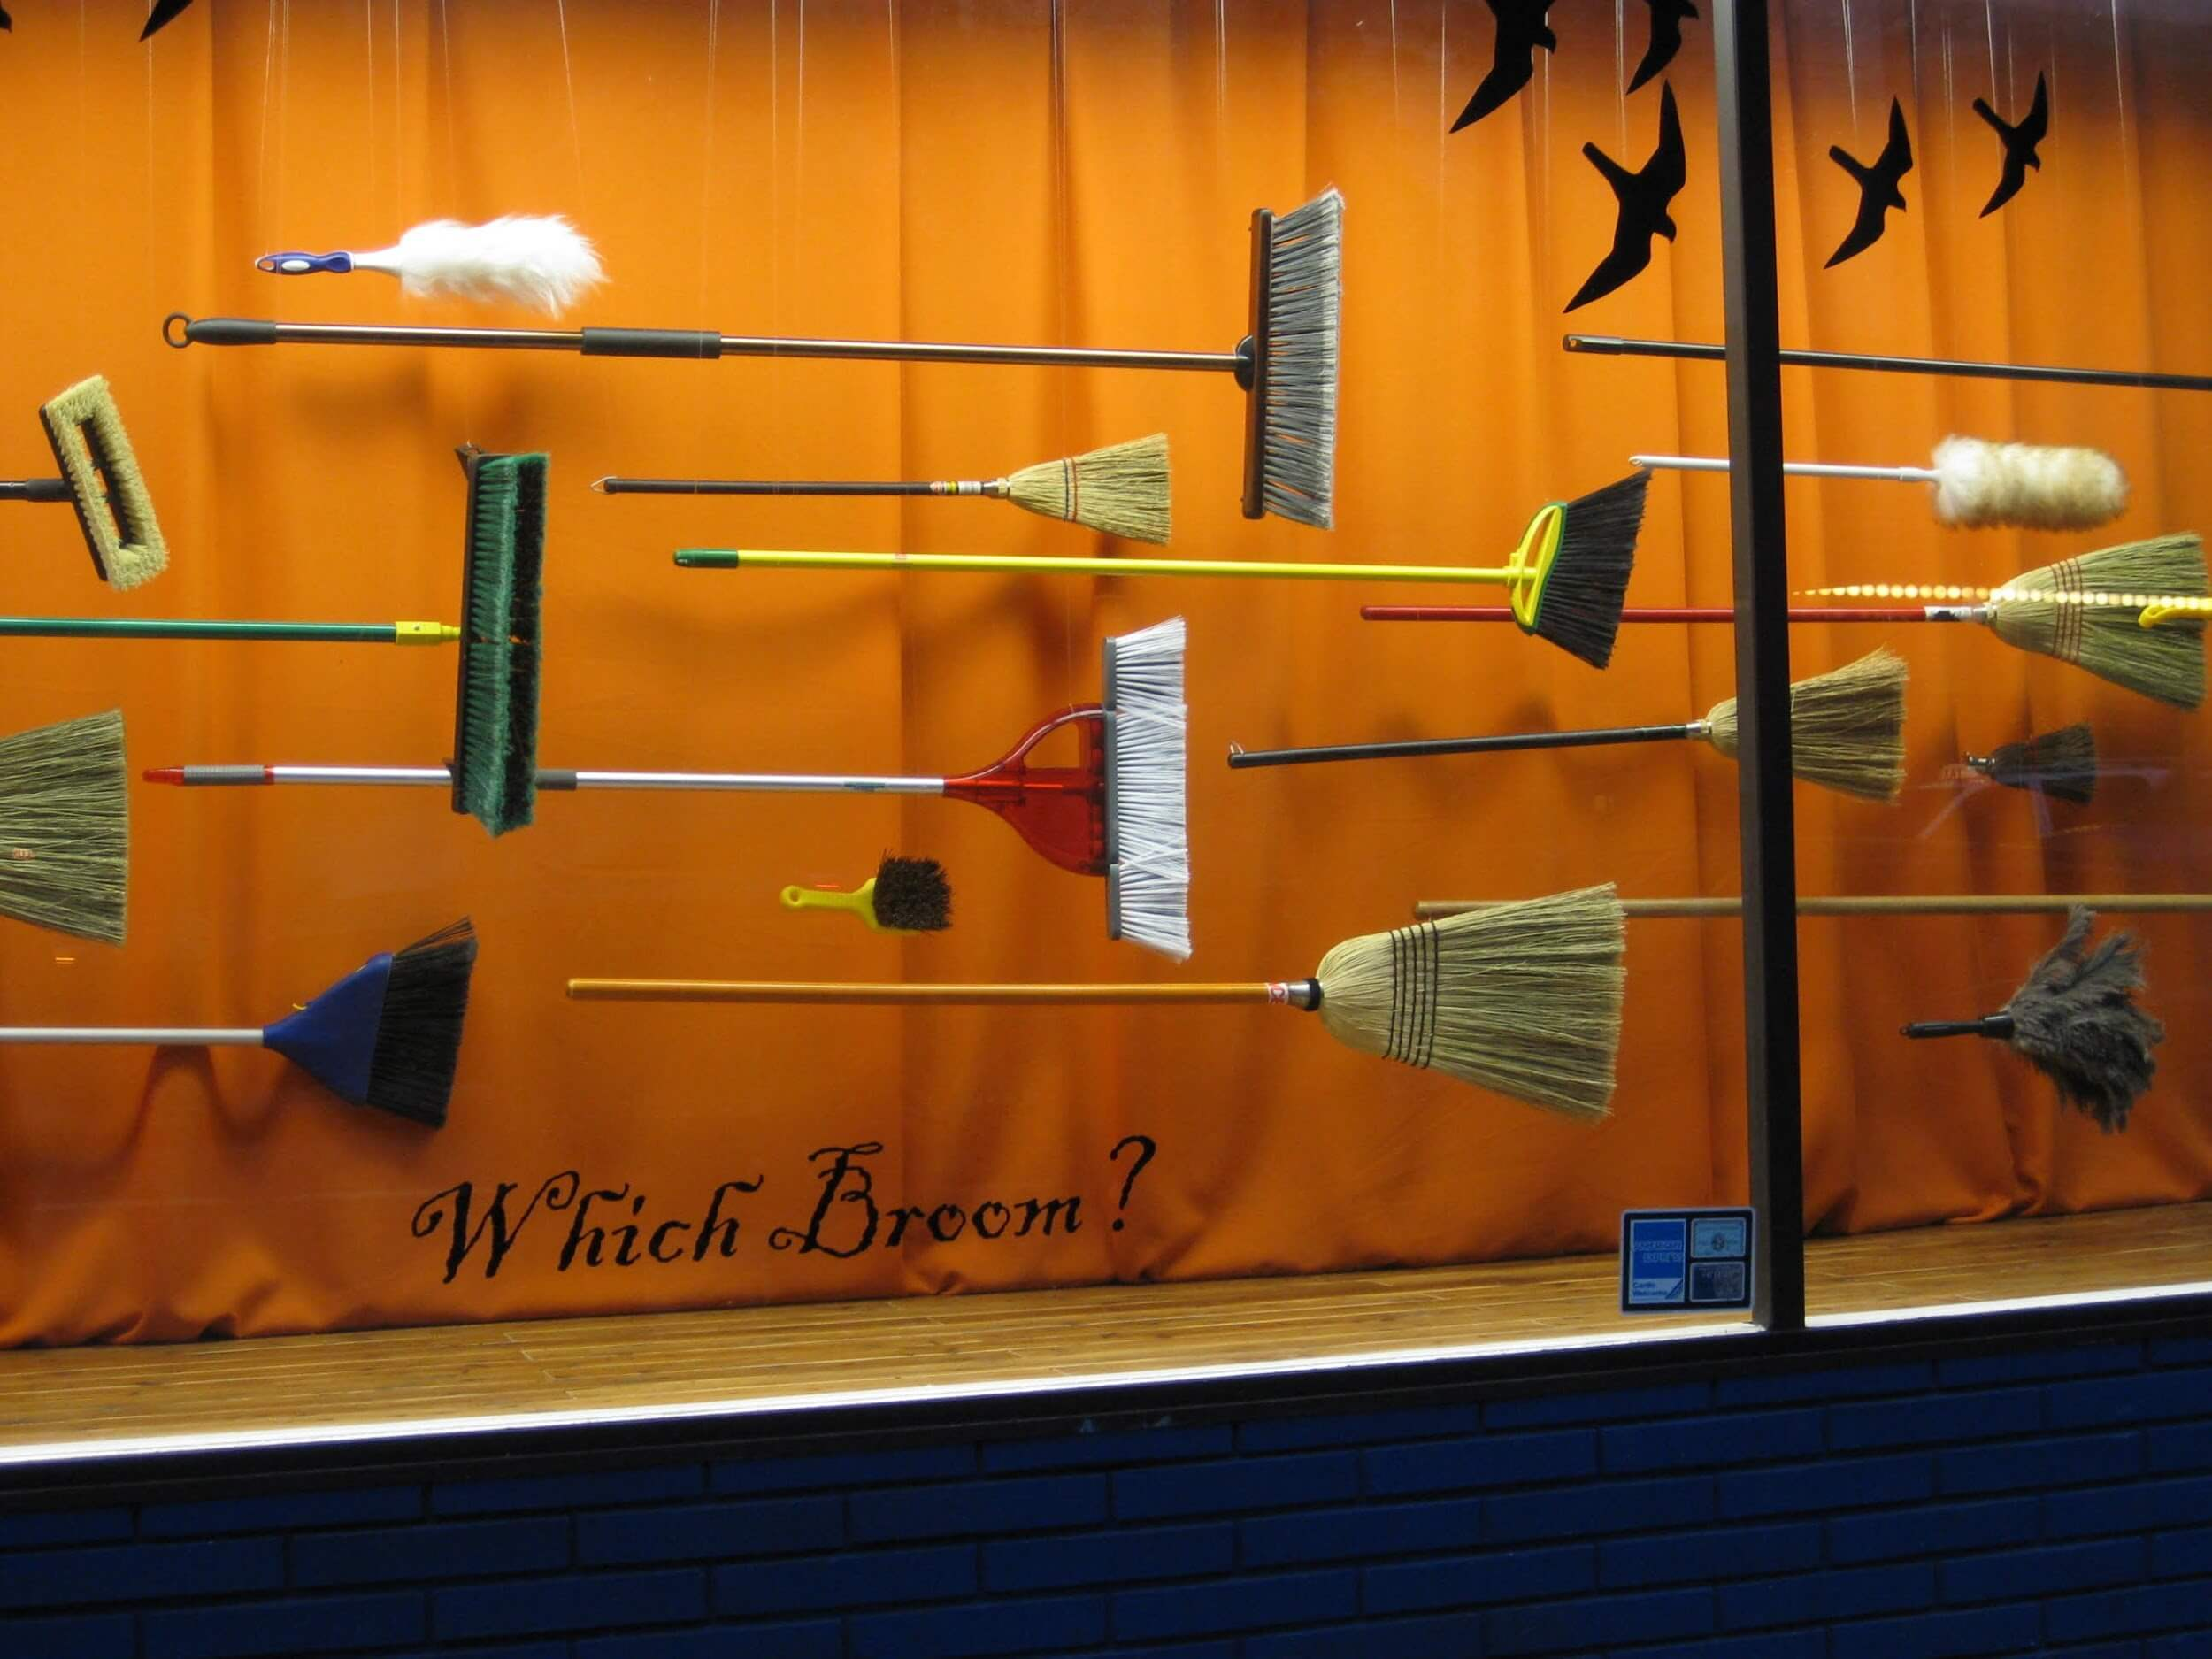 A creative Halloween window display with different models of broomsticks, an orange curtain and raven stickers.